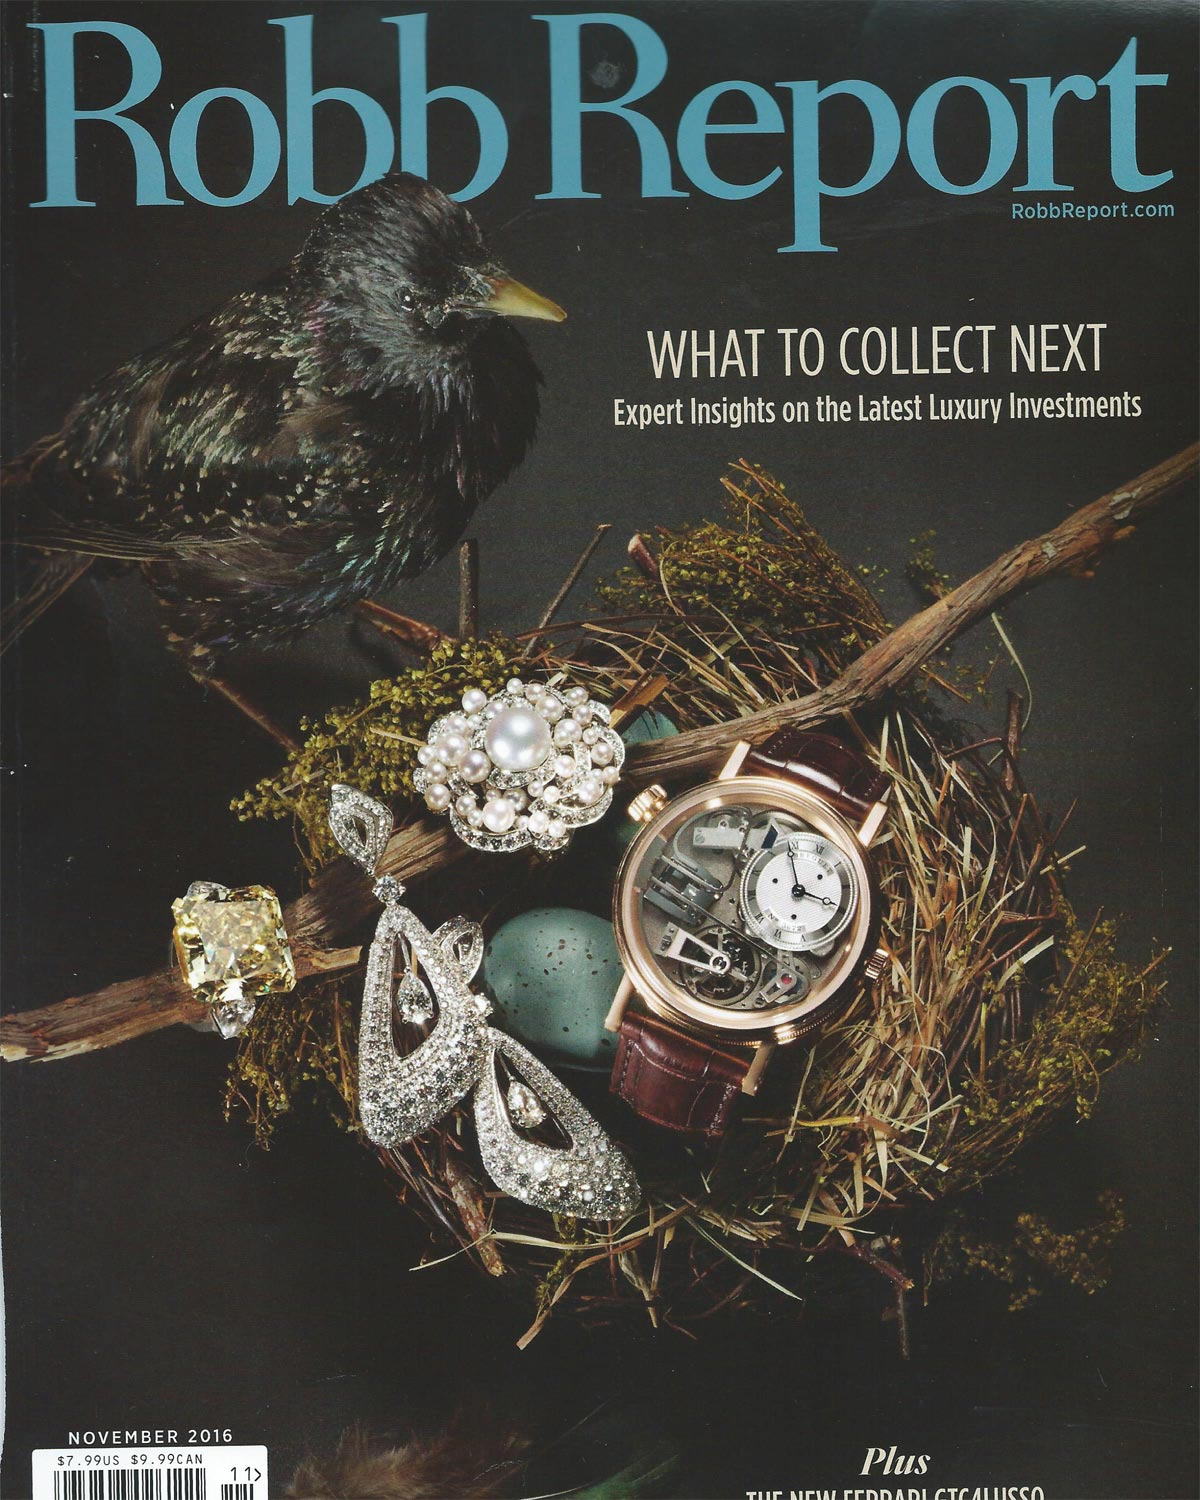 Robb Report, 1 of 3